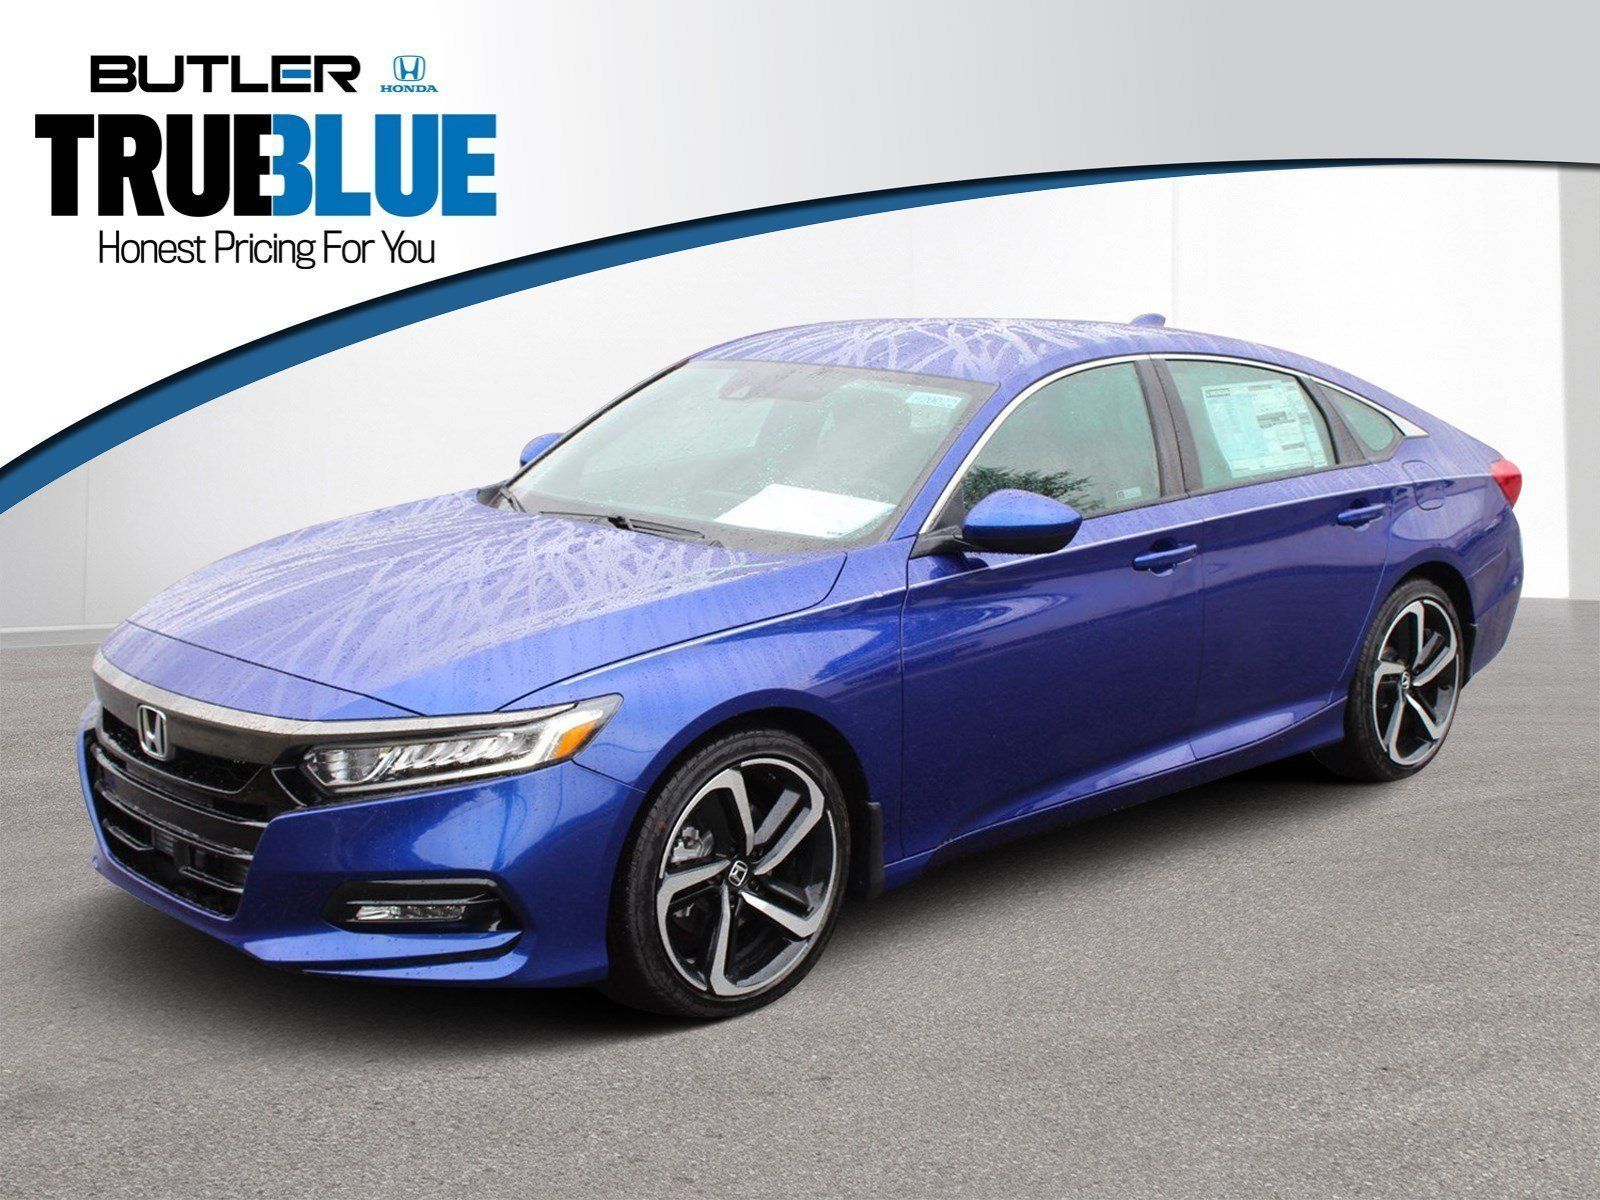 2020 Honda Fcev New Review In 2020 Honda Accord Coupe Honda Accord Accord Coupe